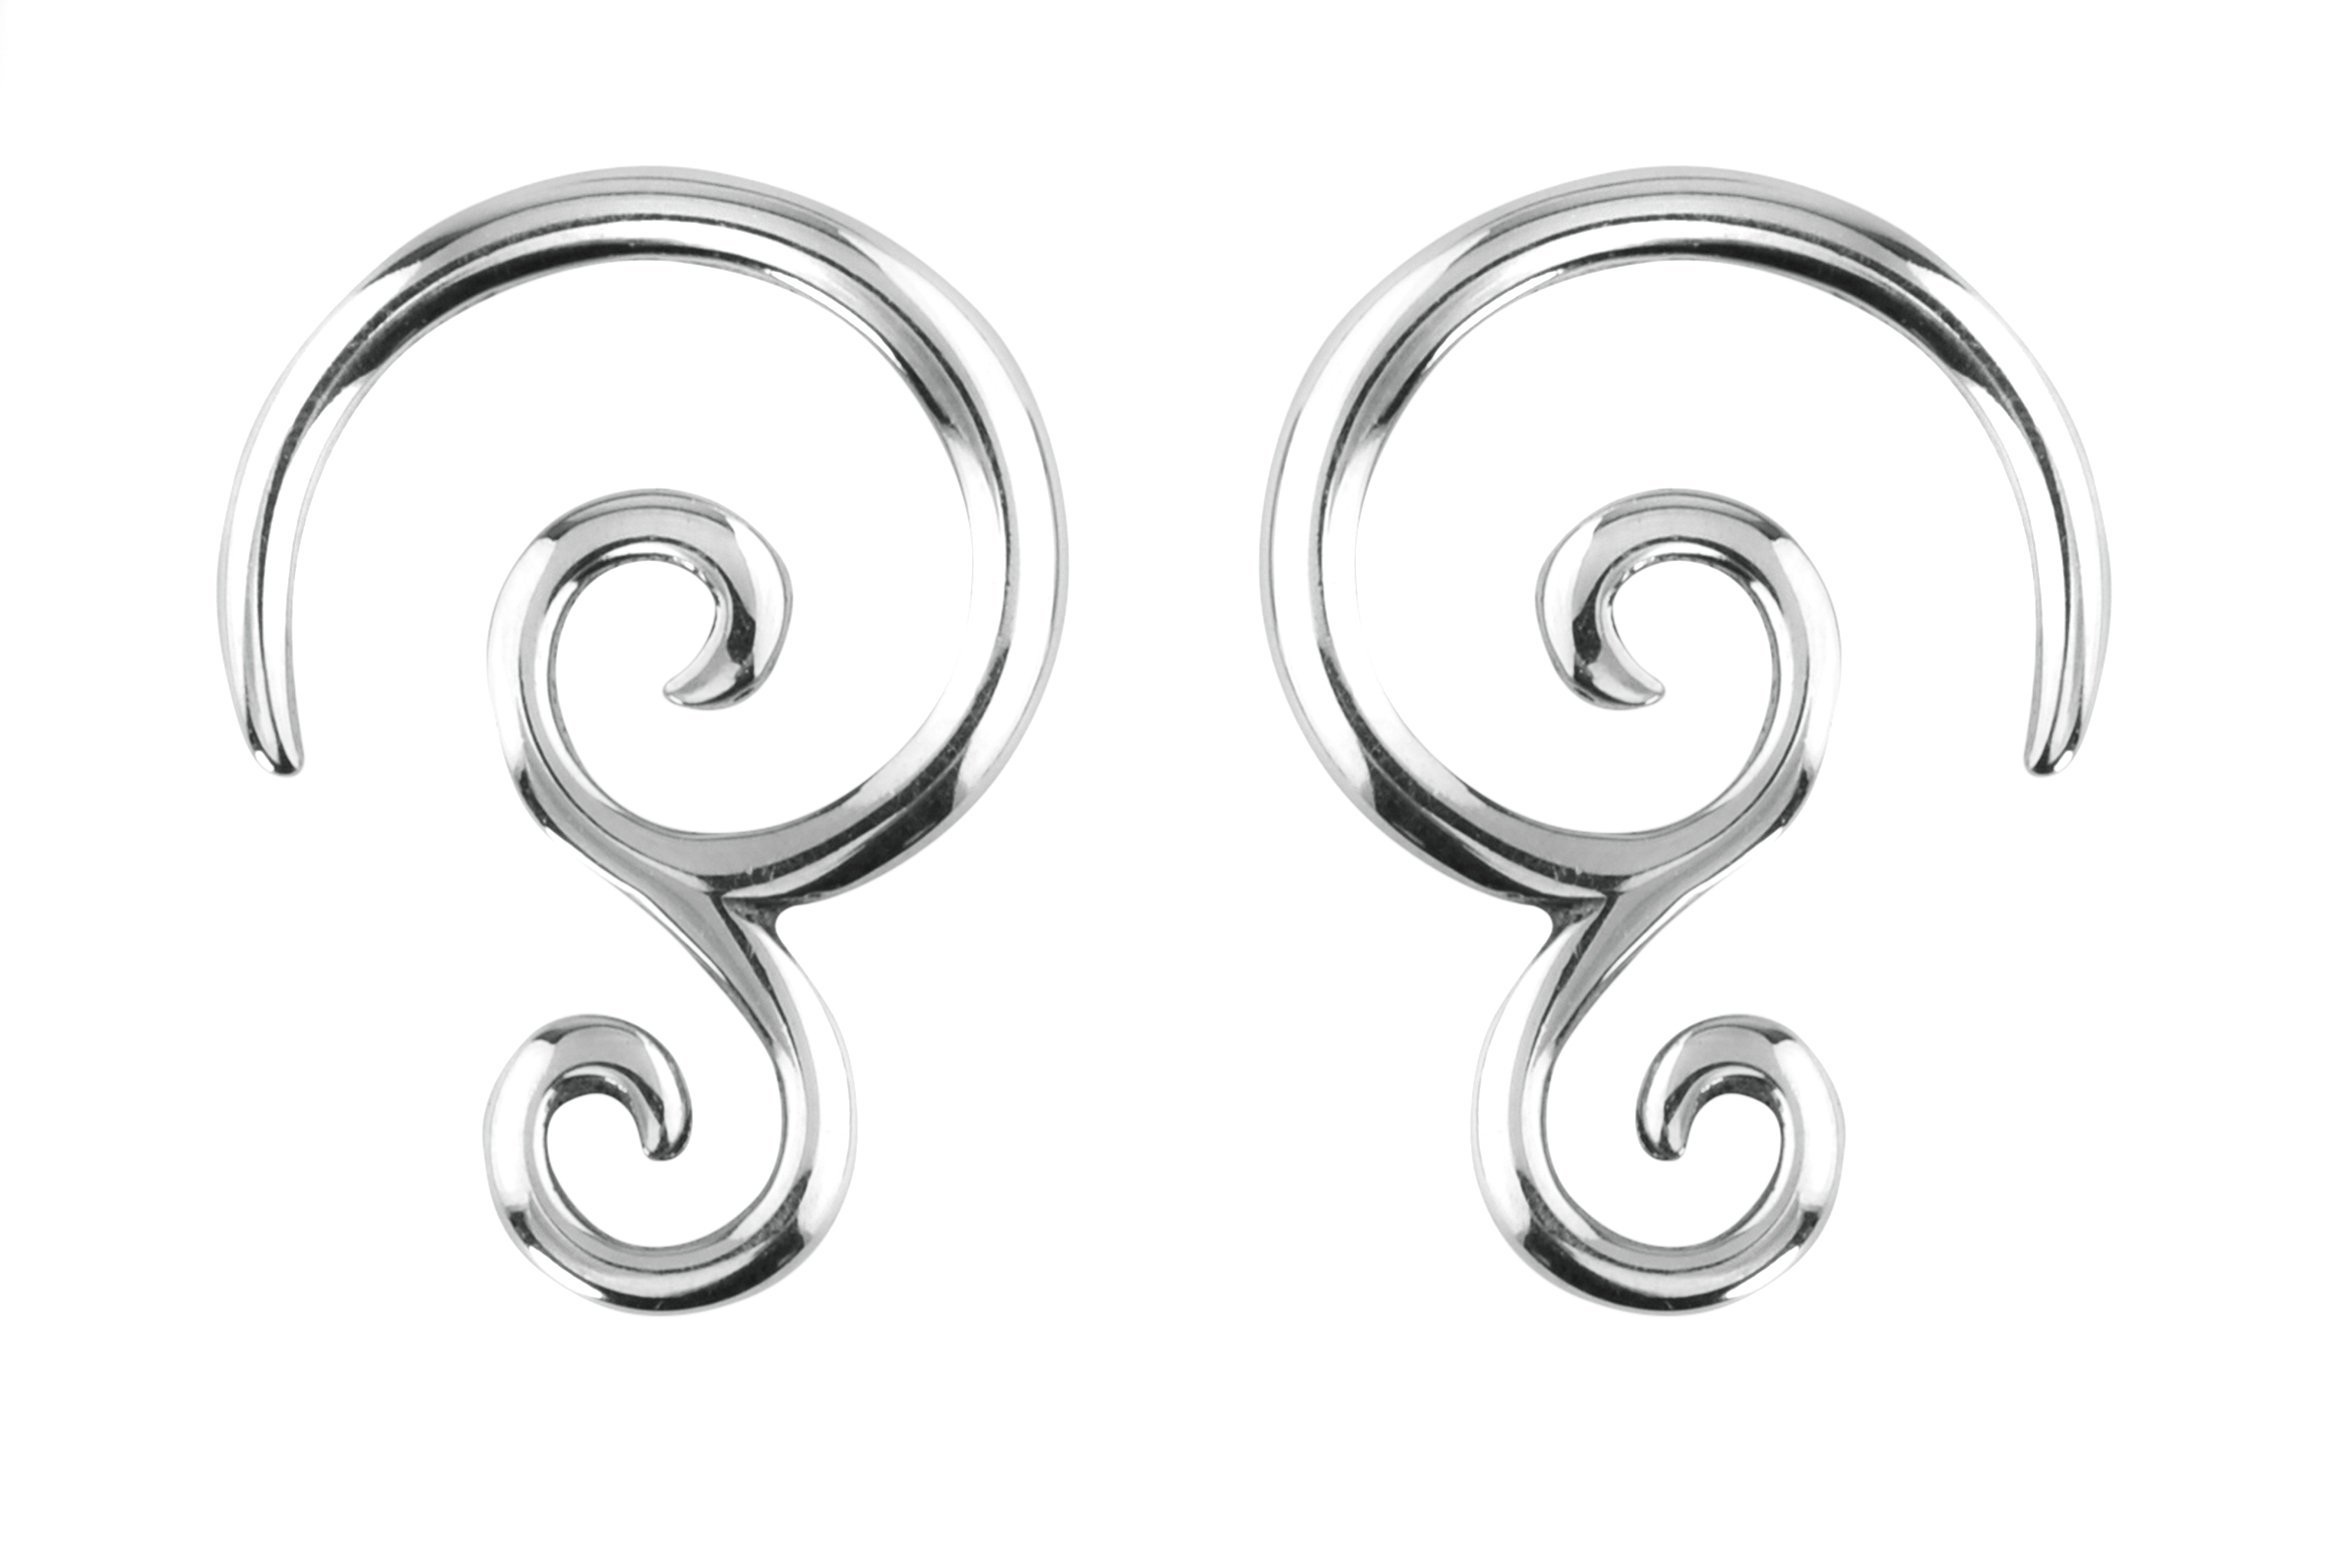 Forbidden Body Jewelry Pair of 10g (2.4mm) Surgical Steel Solid Tribal Design Taper Earrings by Forbidden Body Jewelry